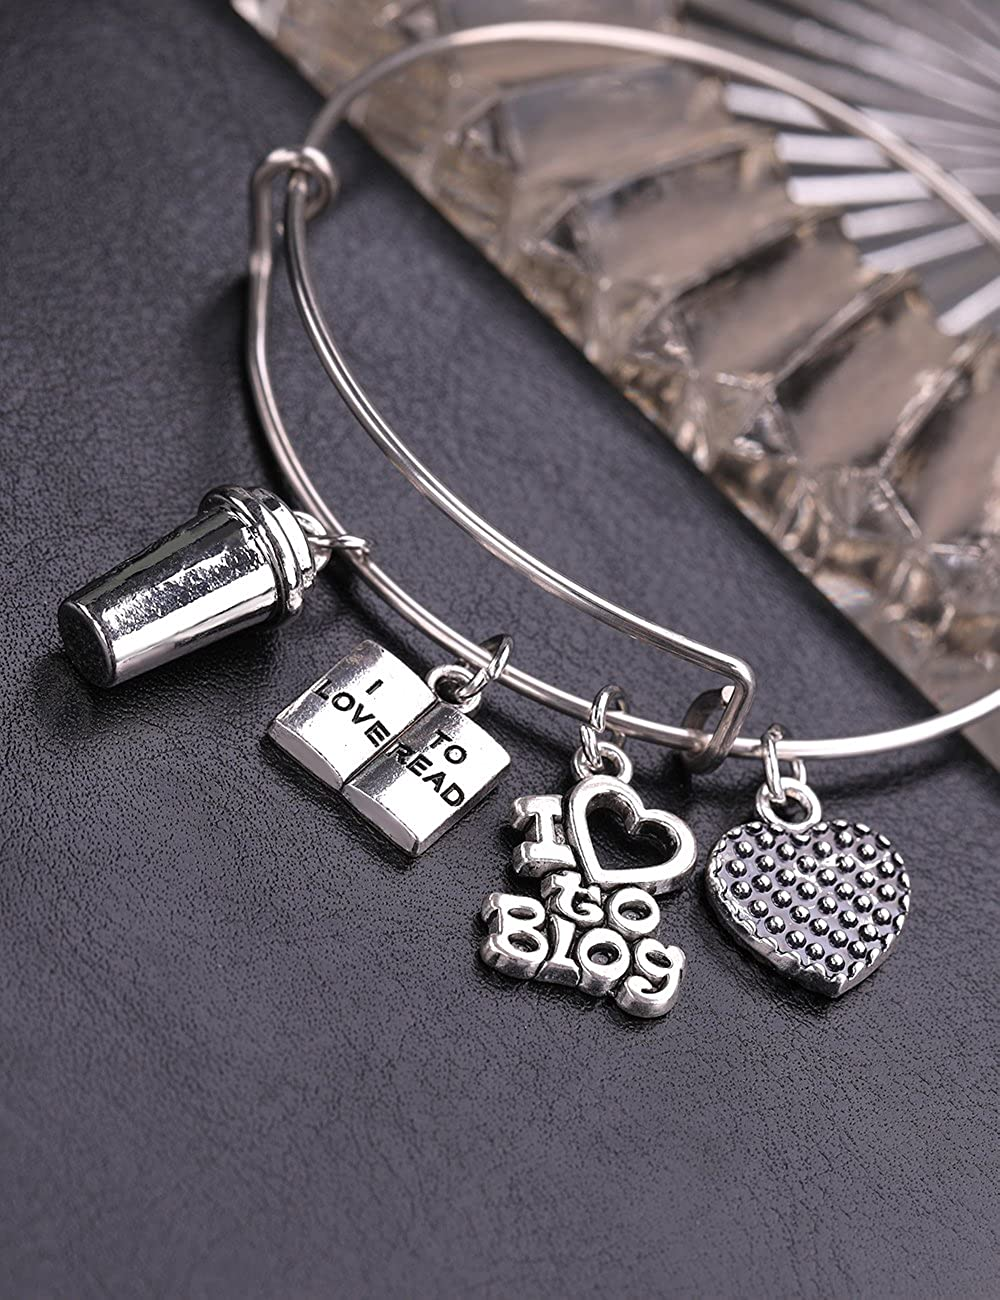 Dawapara Cafe Symbol Coffee Cup with Book I Love to Read Statement Charm Bracelet Jewelry for Artistic Lady//Girl